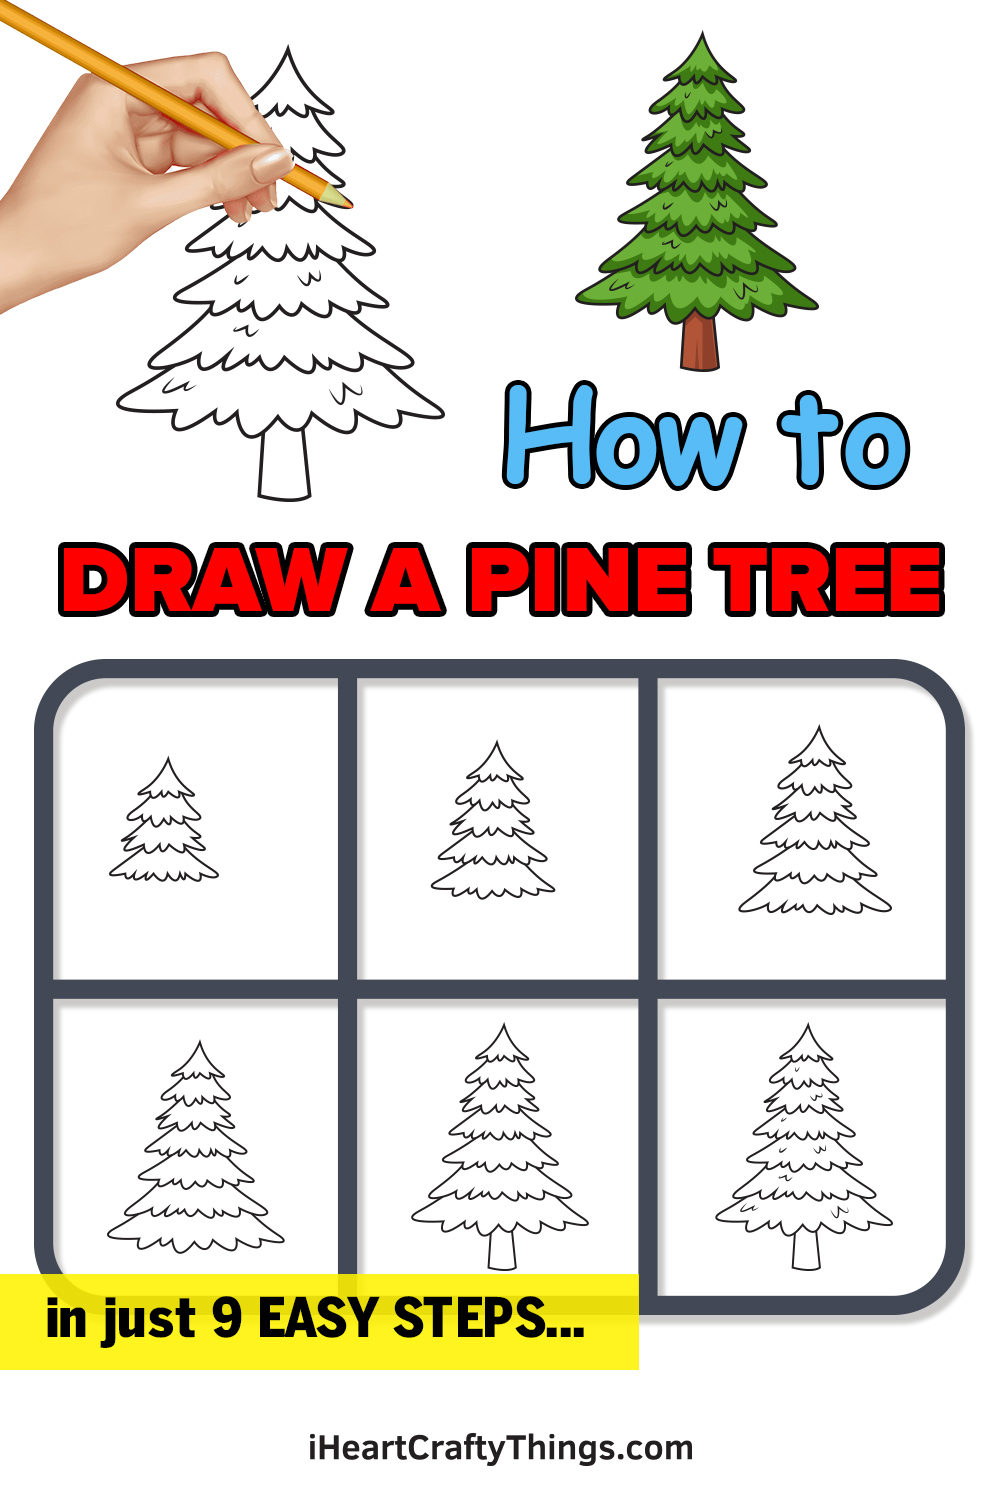 how to draw a pine tree in 9 easy steps